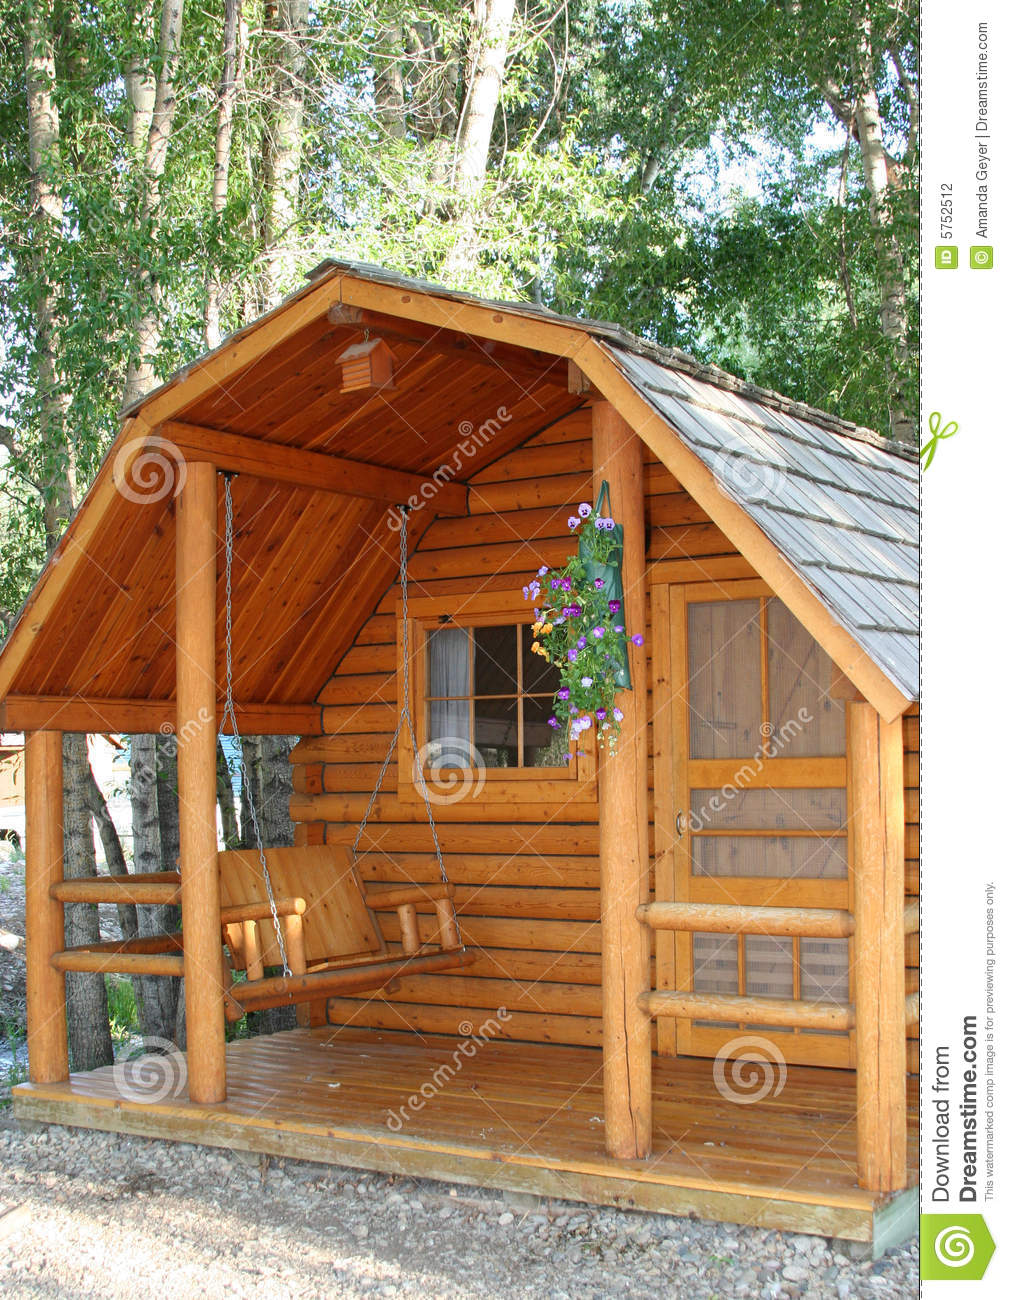 Small Wood Cabin Stock Photography Image 5752512